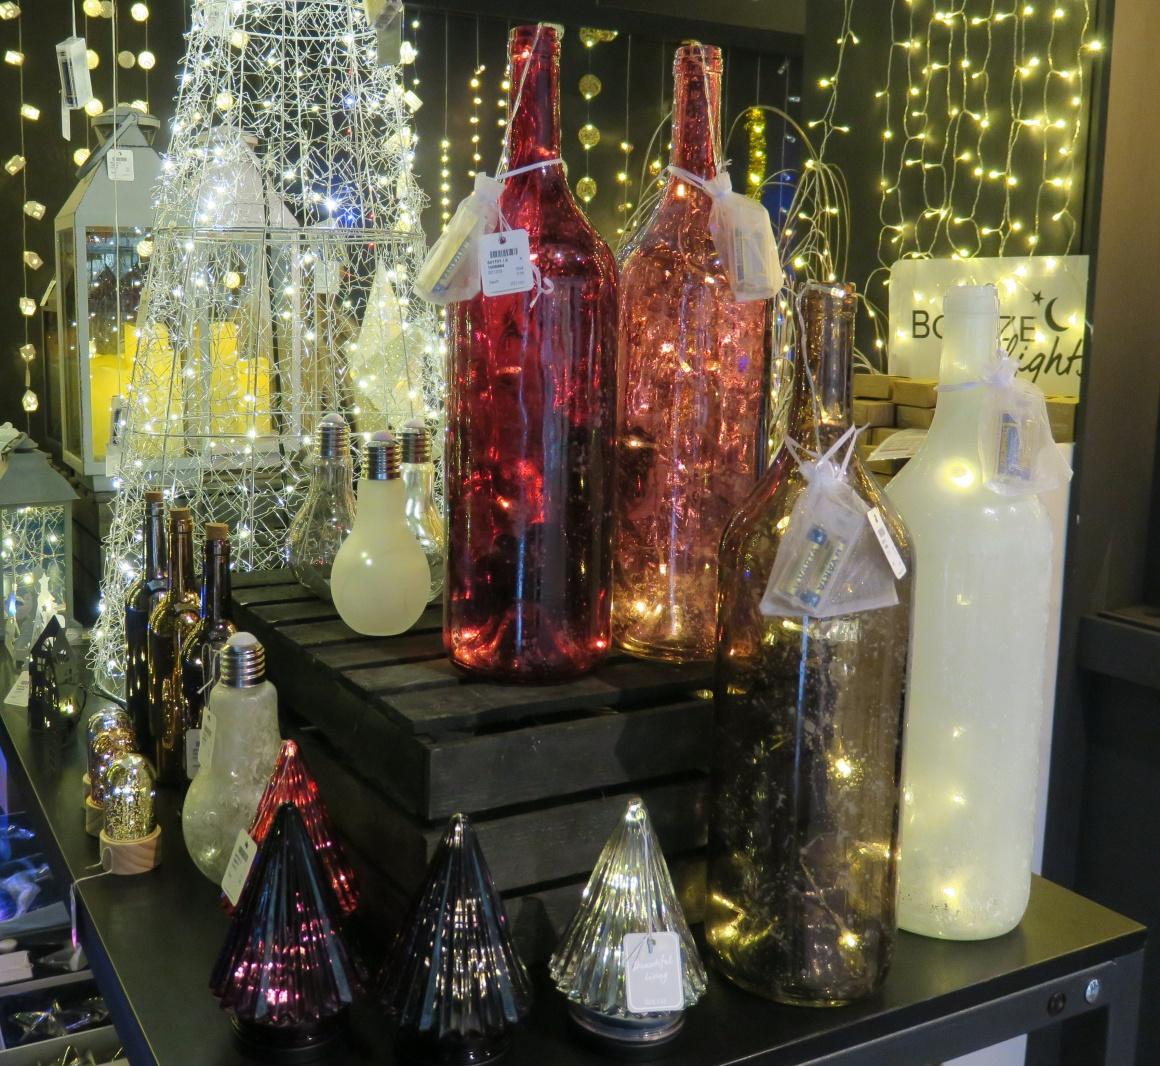 Bottles and vases with glowing lights inside; copyright: iXtenso / Pott...